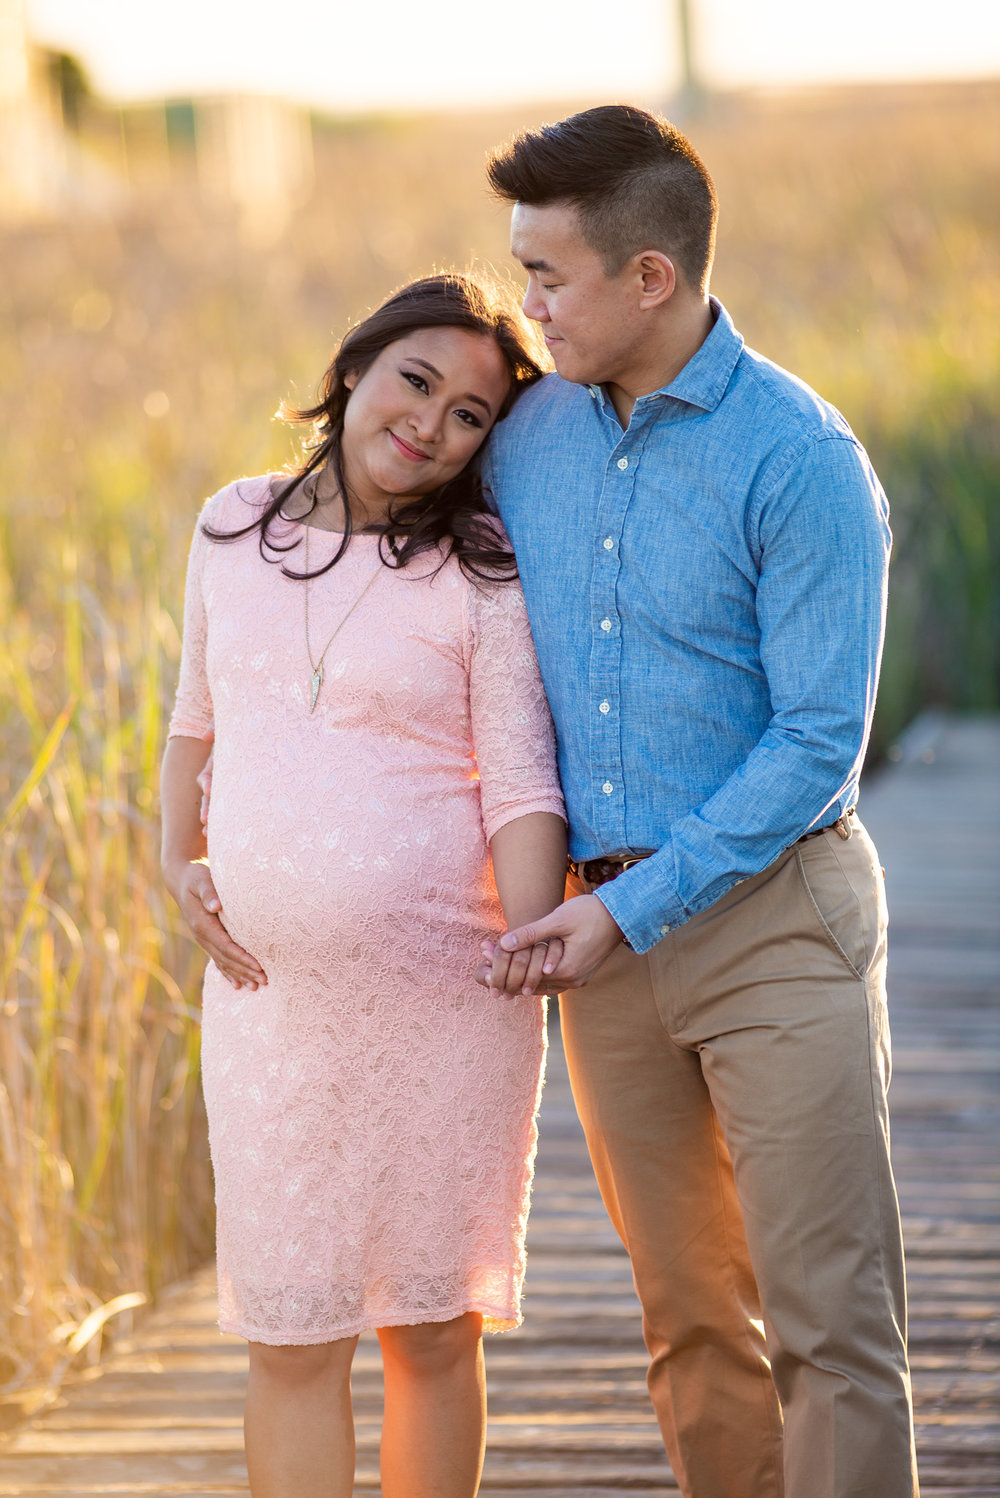 Evening Sunset Maternity Photo Shoot-10.jpg